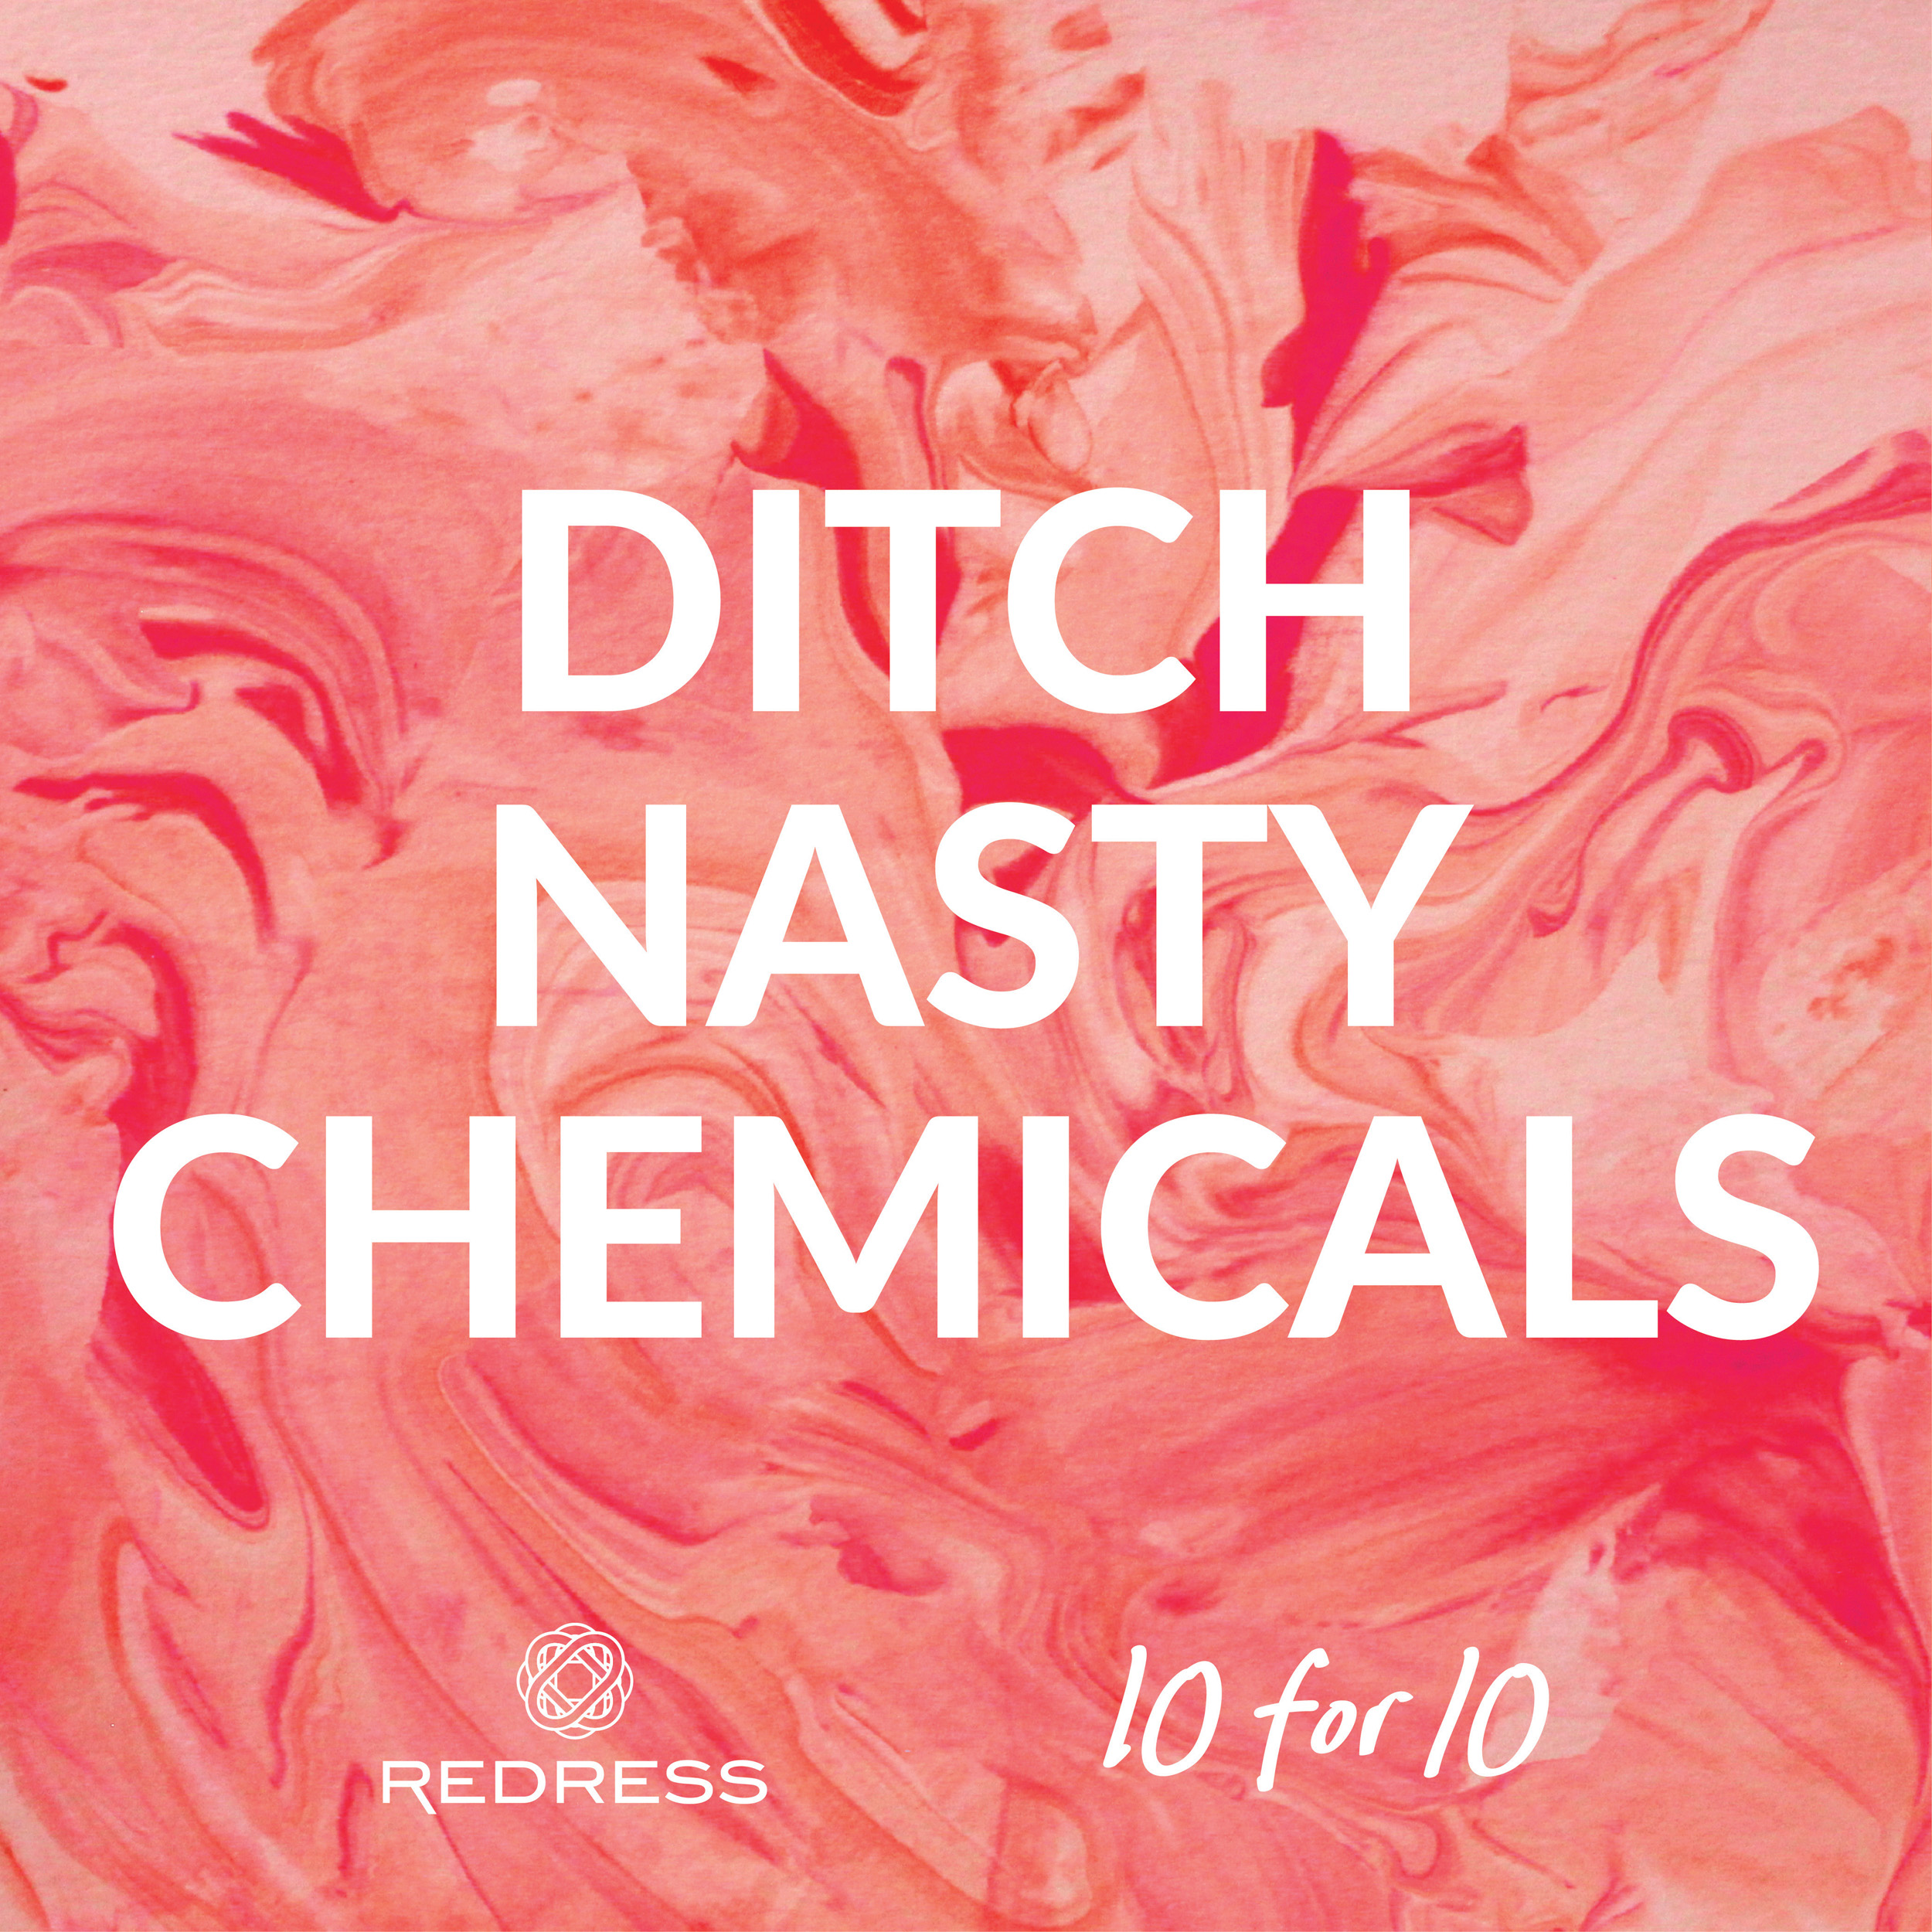 Redress 10for10 DitchNastyChemicals.jpg